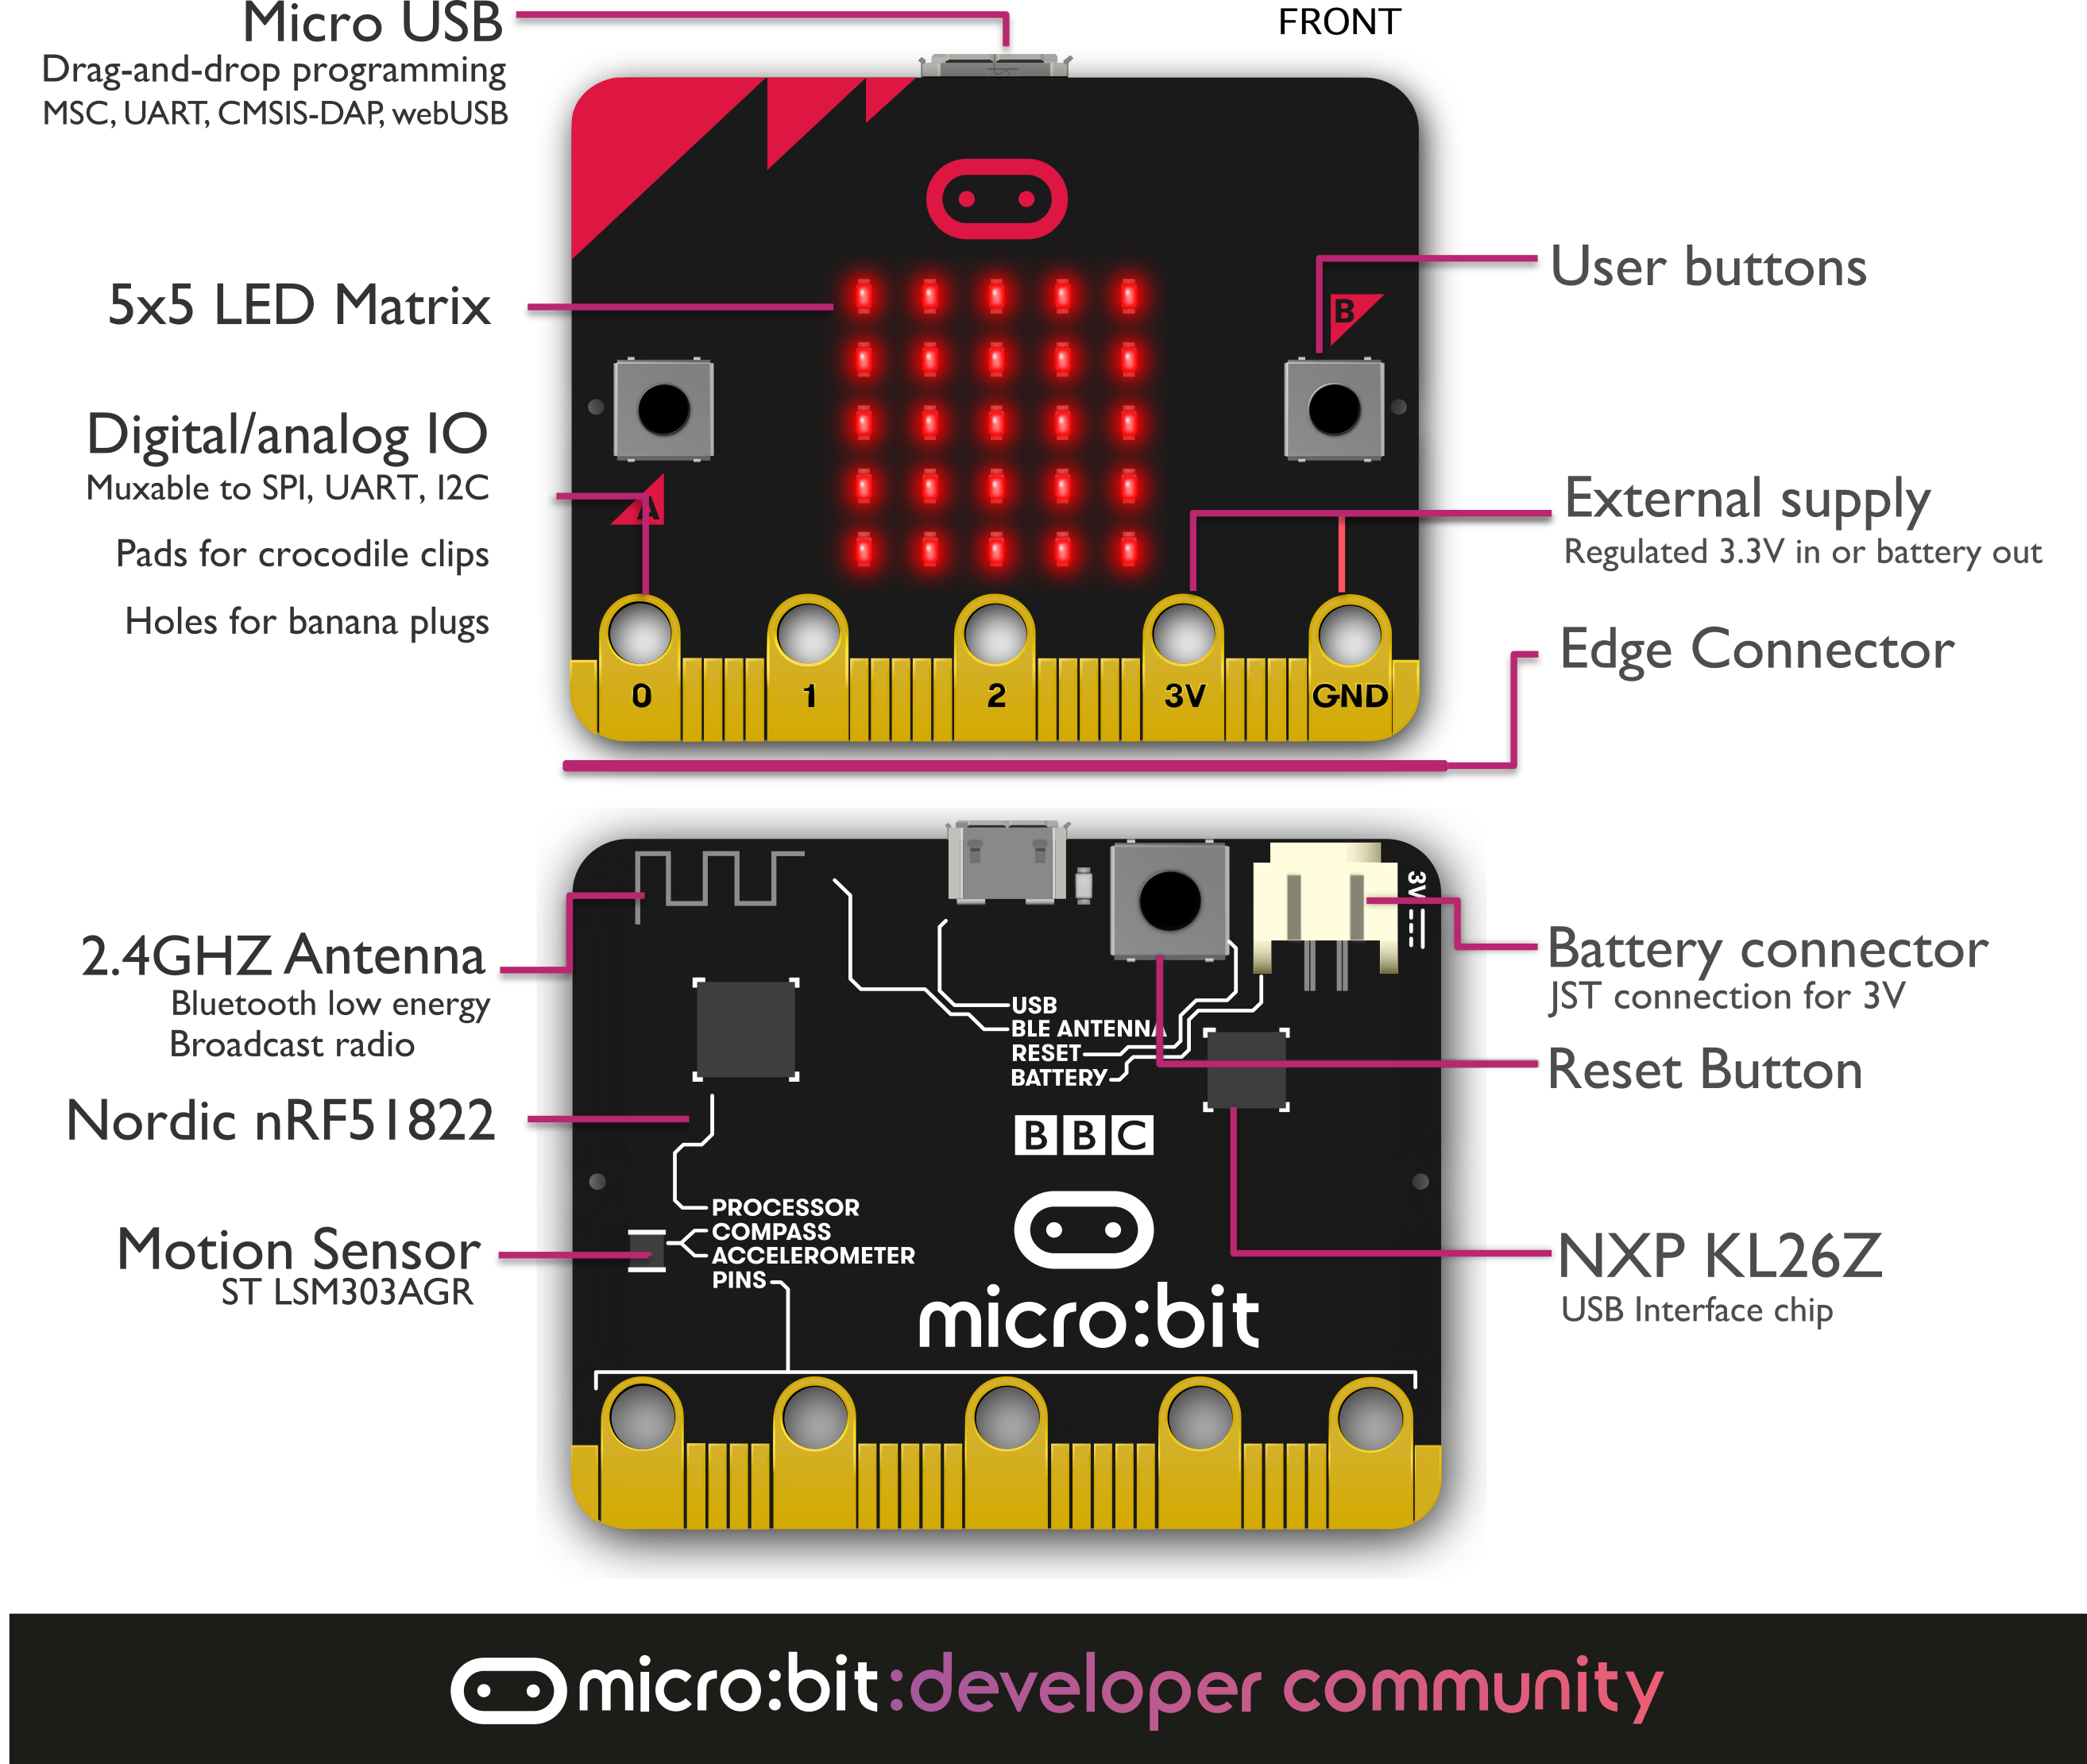 Hardware Usb Interface Schematic Getting Started With The Microbit